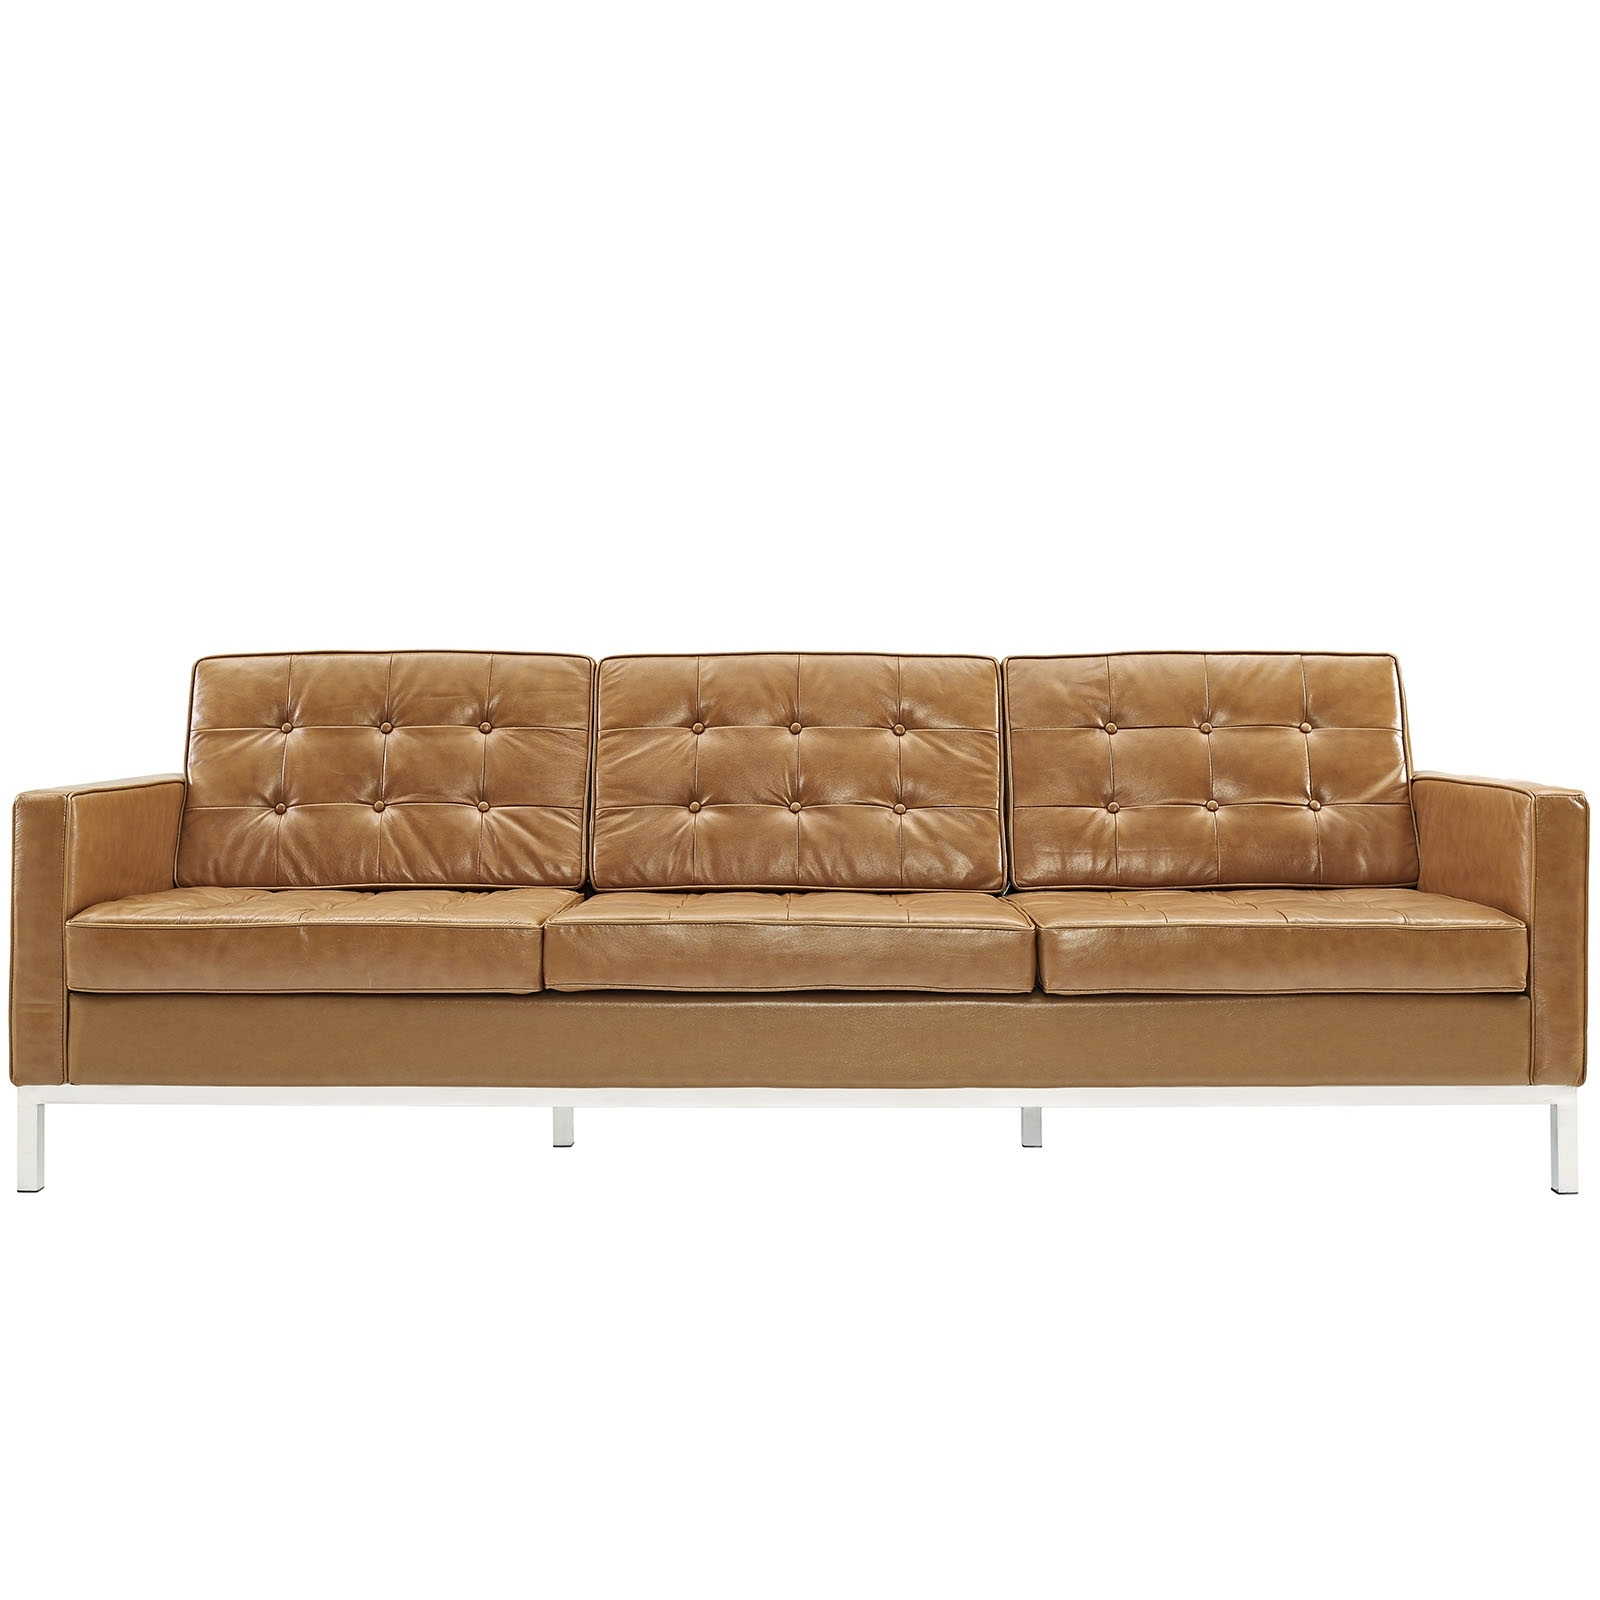 Florence Knoll Style Sofa Couch – Leather Intended For Well Known Florence Knoll Style Sofas (View 8 of 20)